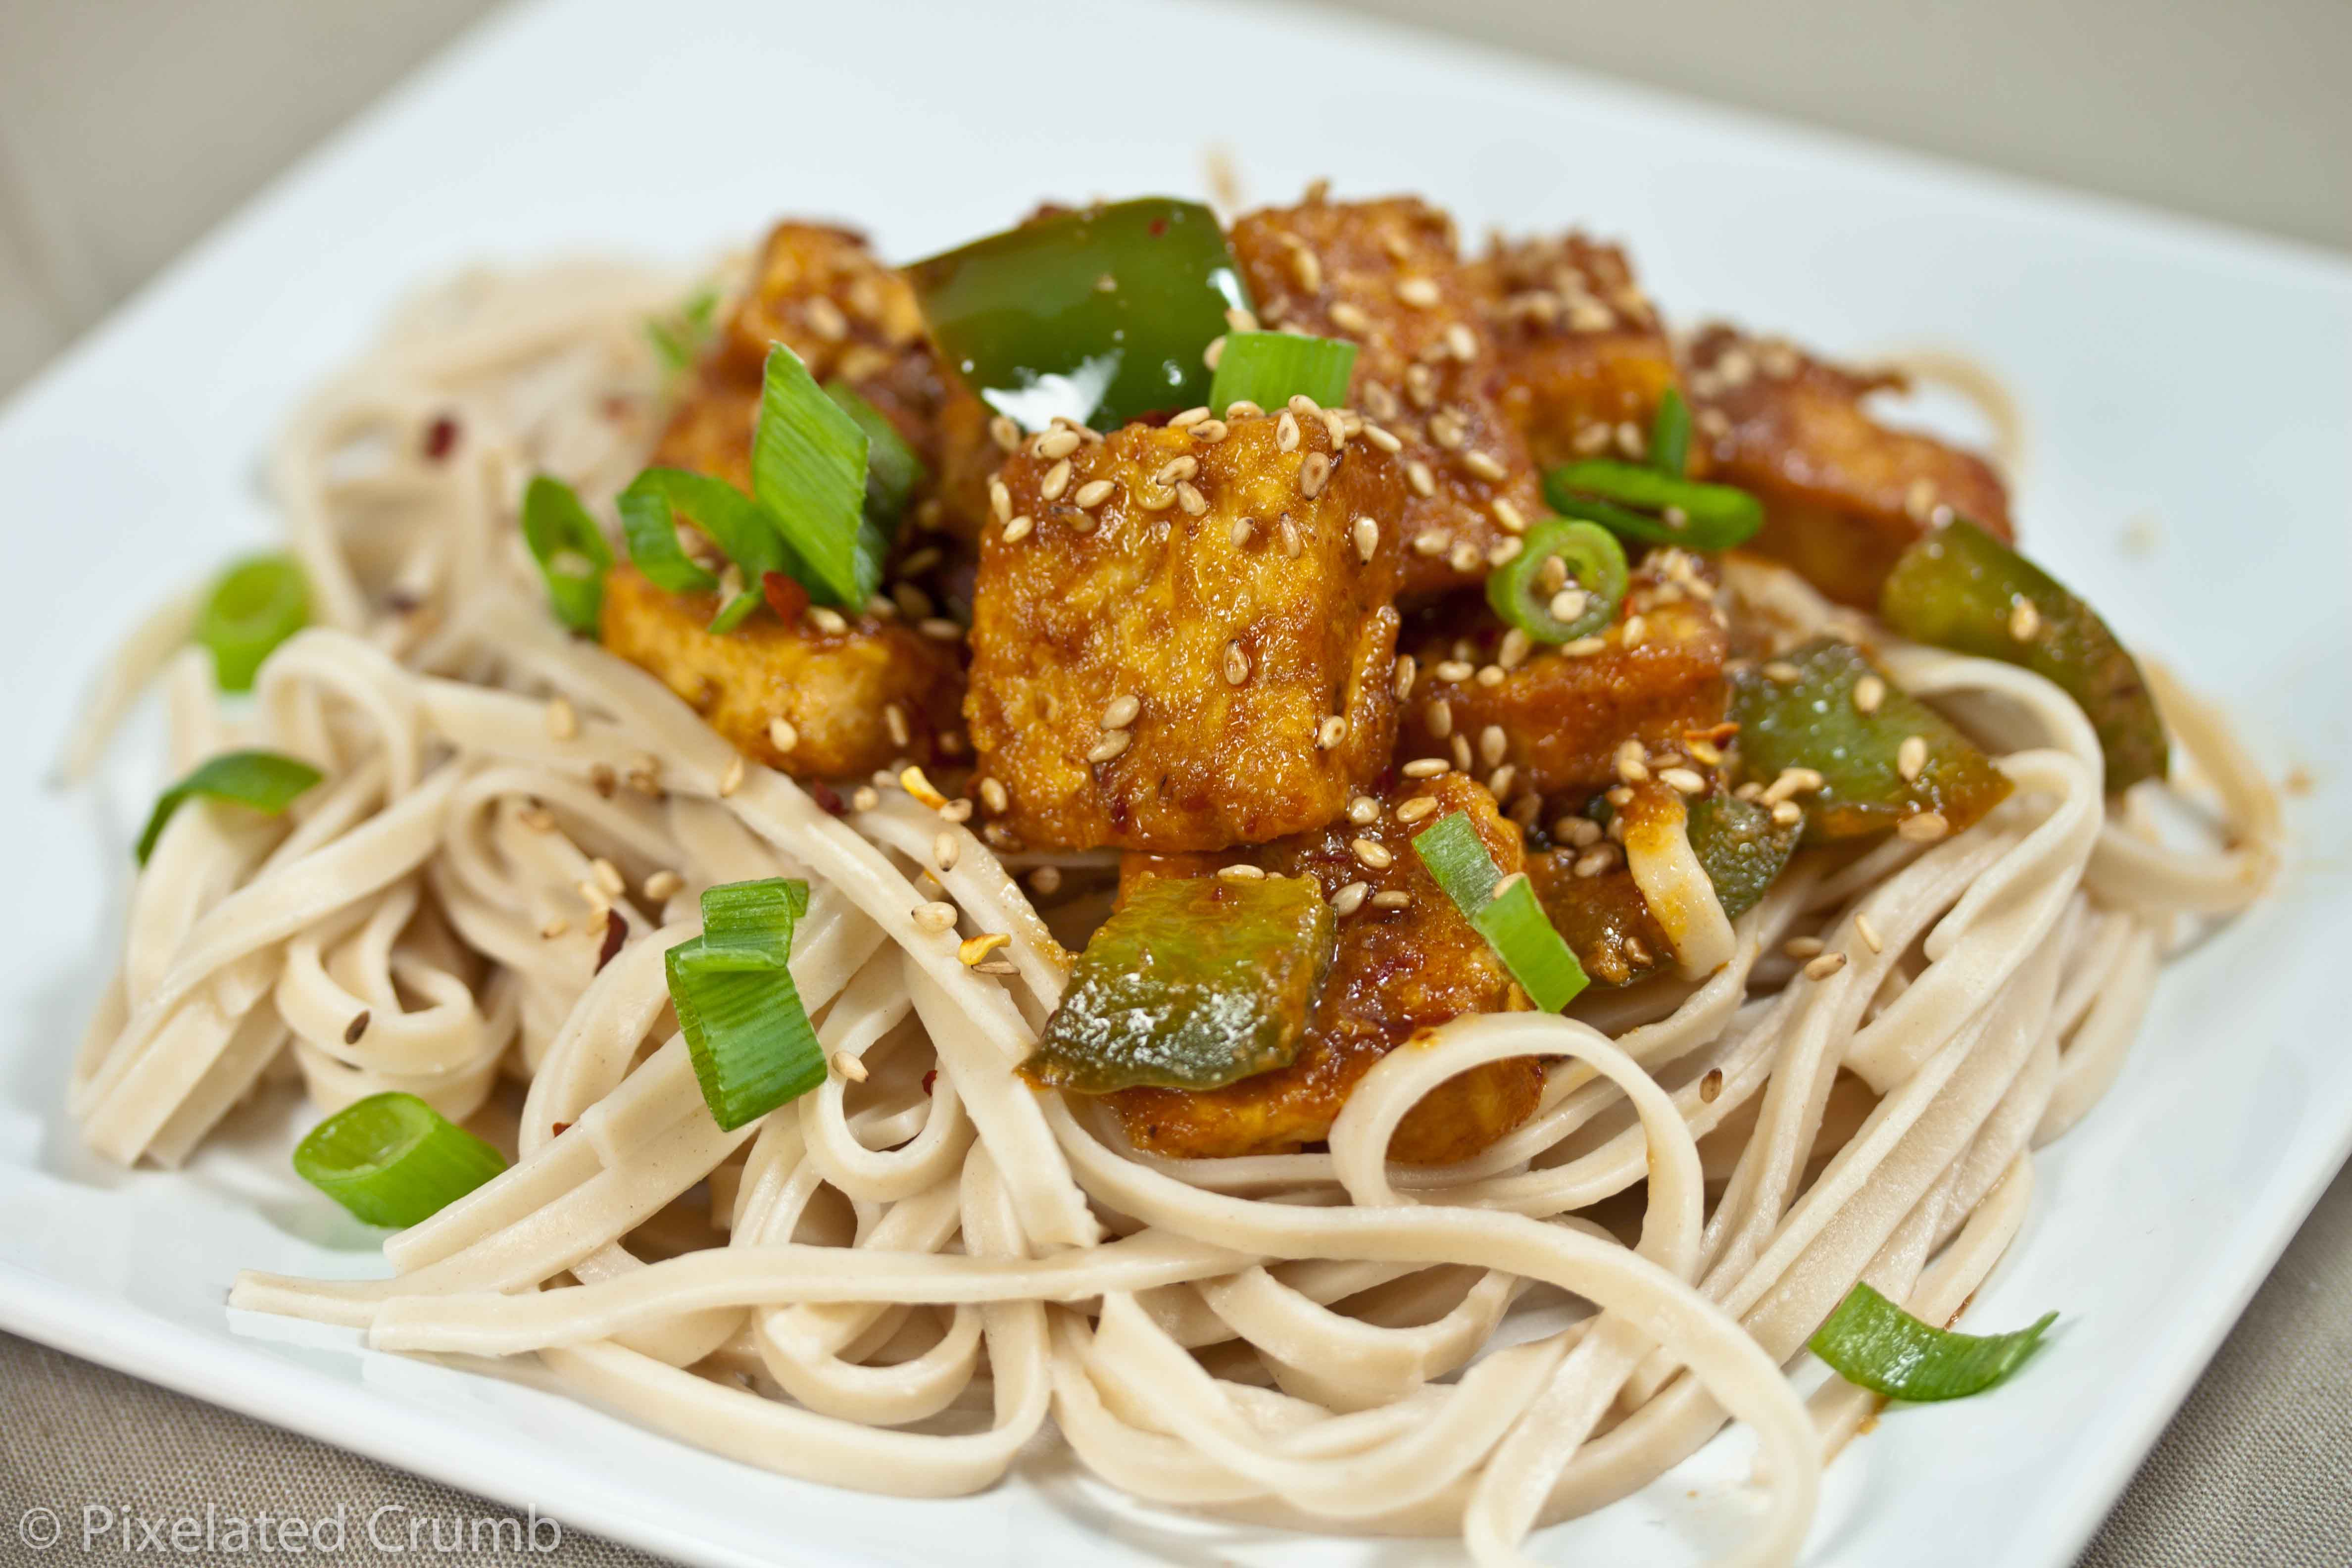 Ginger-Garlic Tofu | Pixelated Crumb